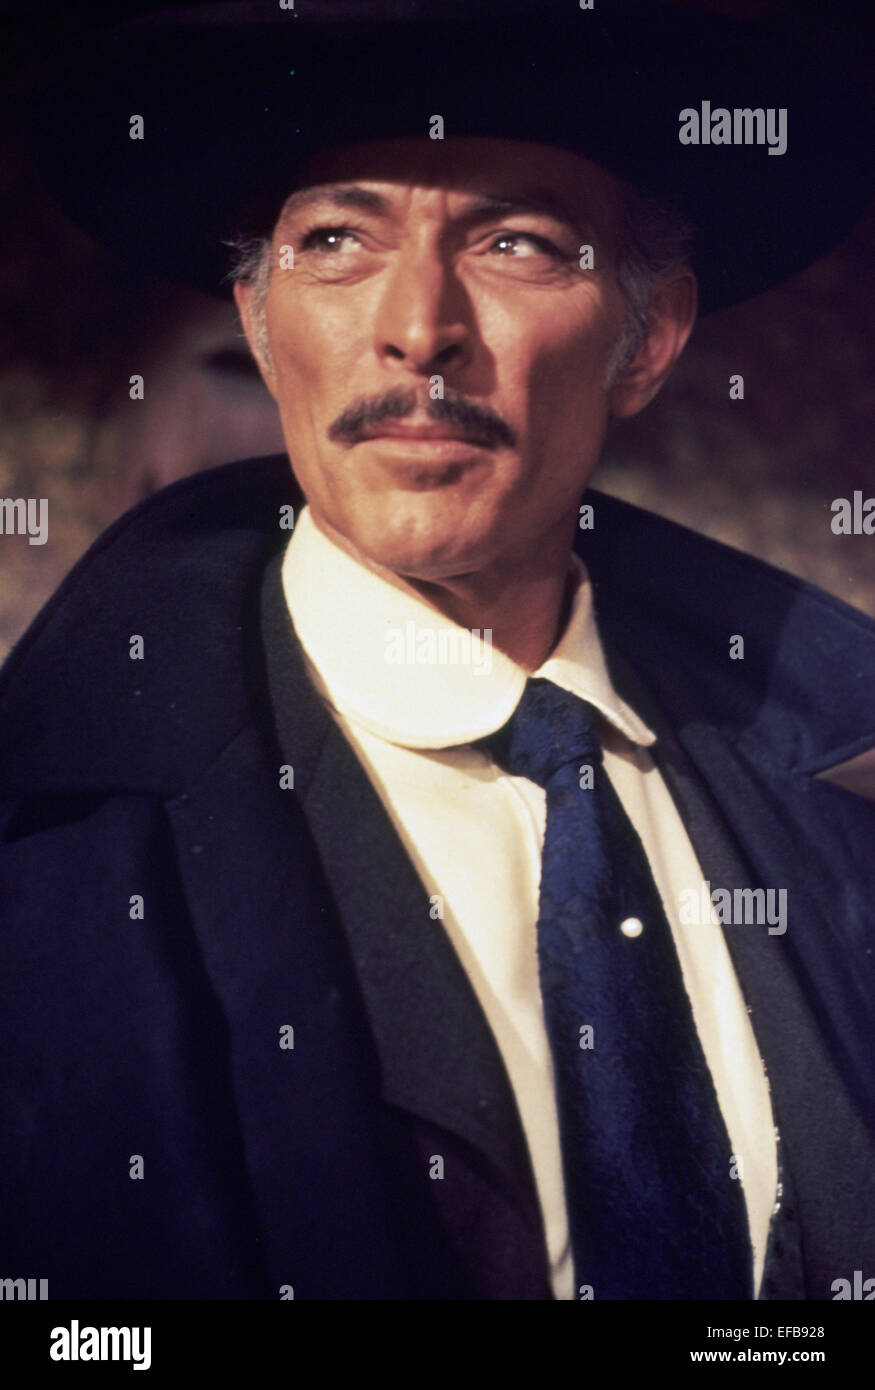 Lee Van Cleef Film Title Sabata Stock Photos \u0026 Lee Van Cleef Film ...